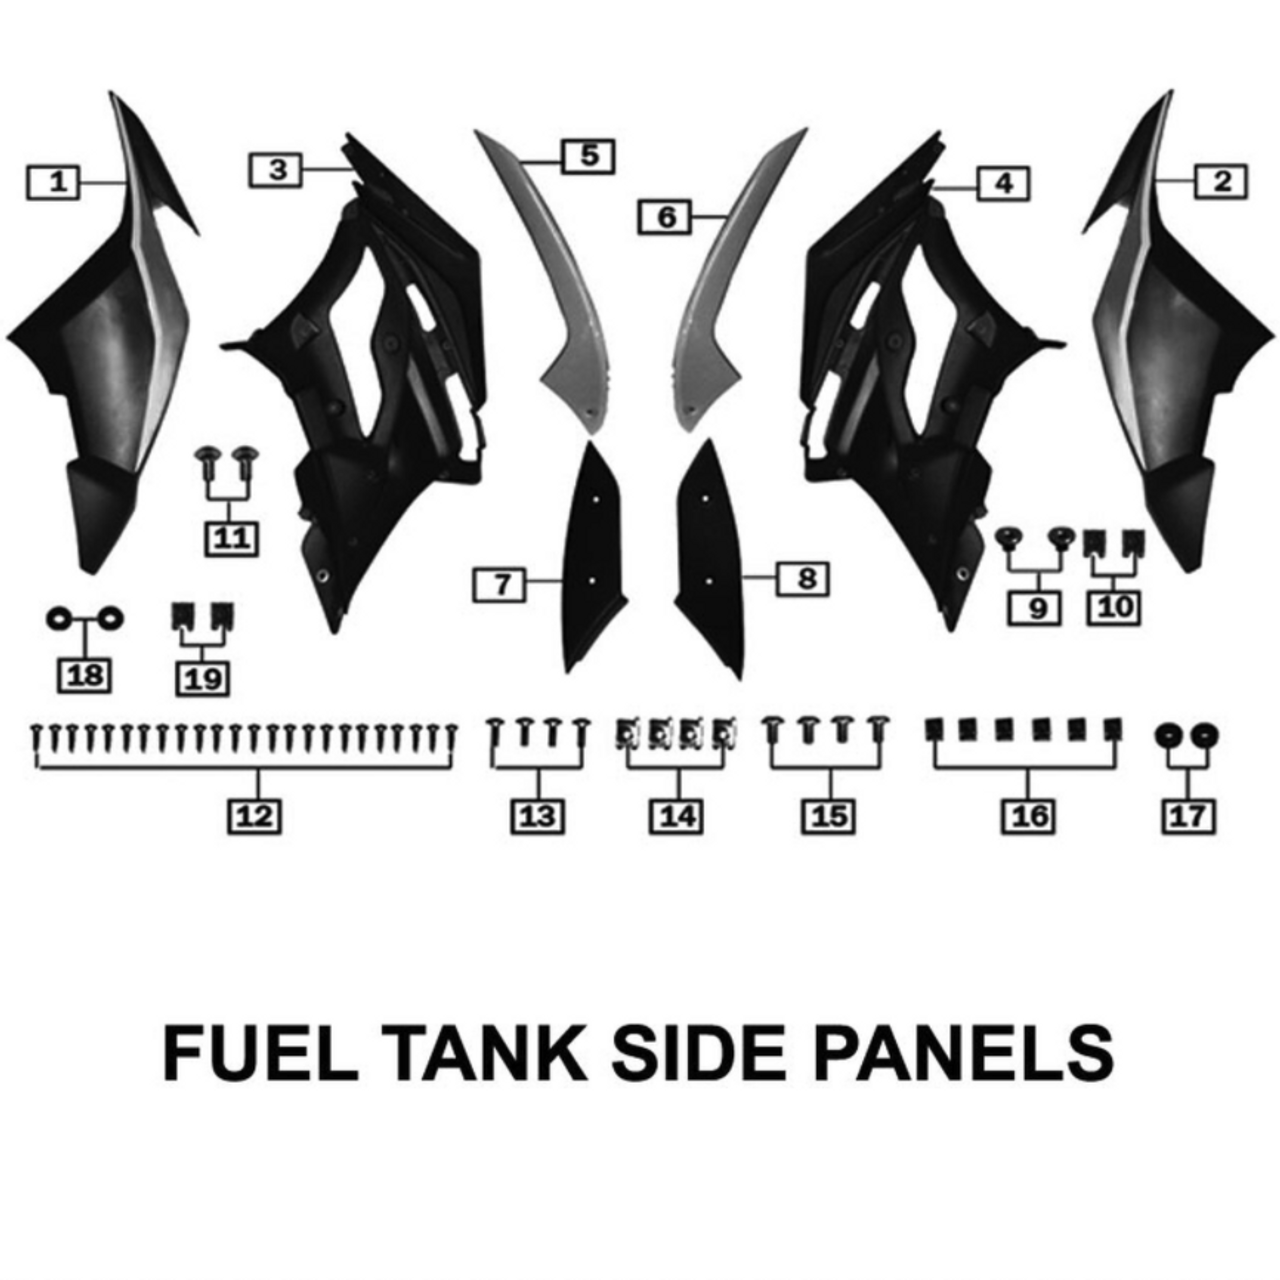 BODY PANELS, FUEL TANK